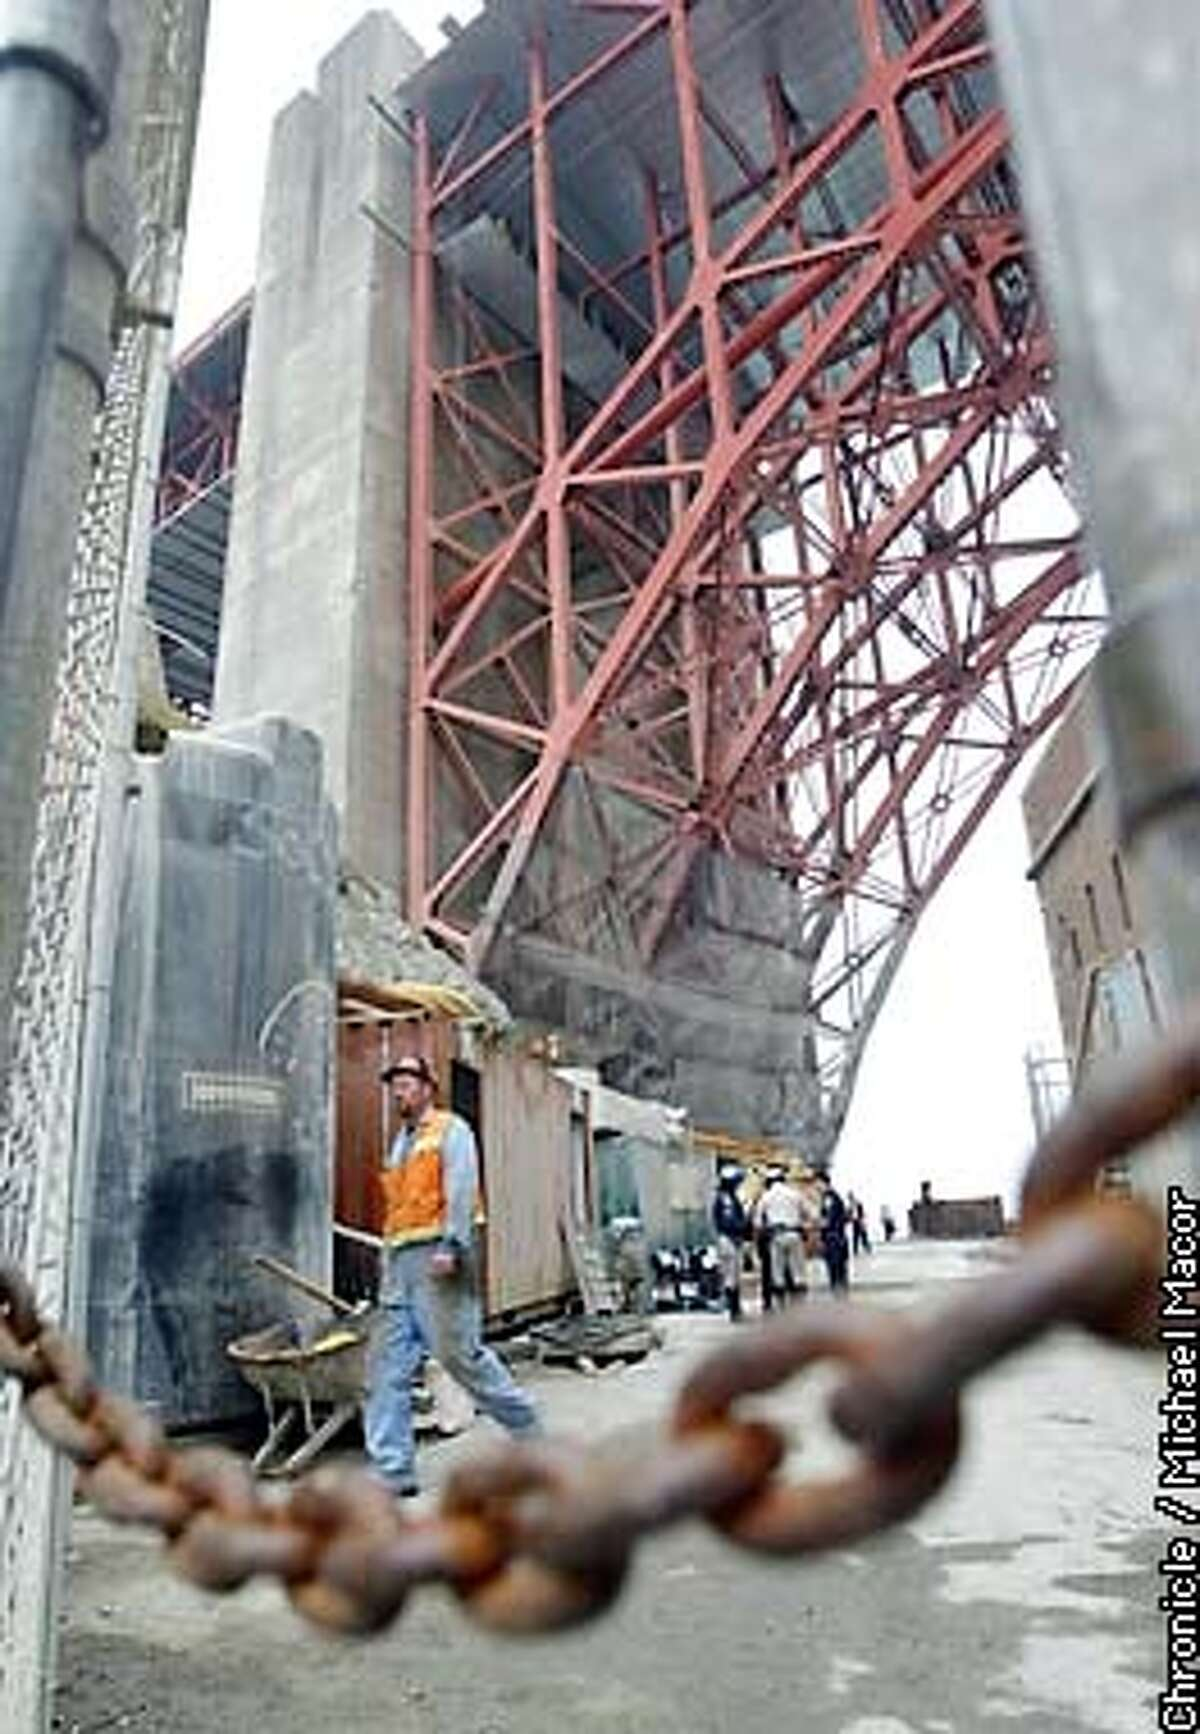 The site of the accident, where a worker fell inside the concrete supprt toweer in the background.A construction was killed during retrofit work on the Golden Gate Bridge. by Michael Macor/The Chronicle